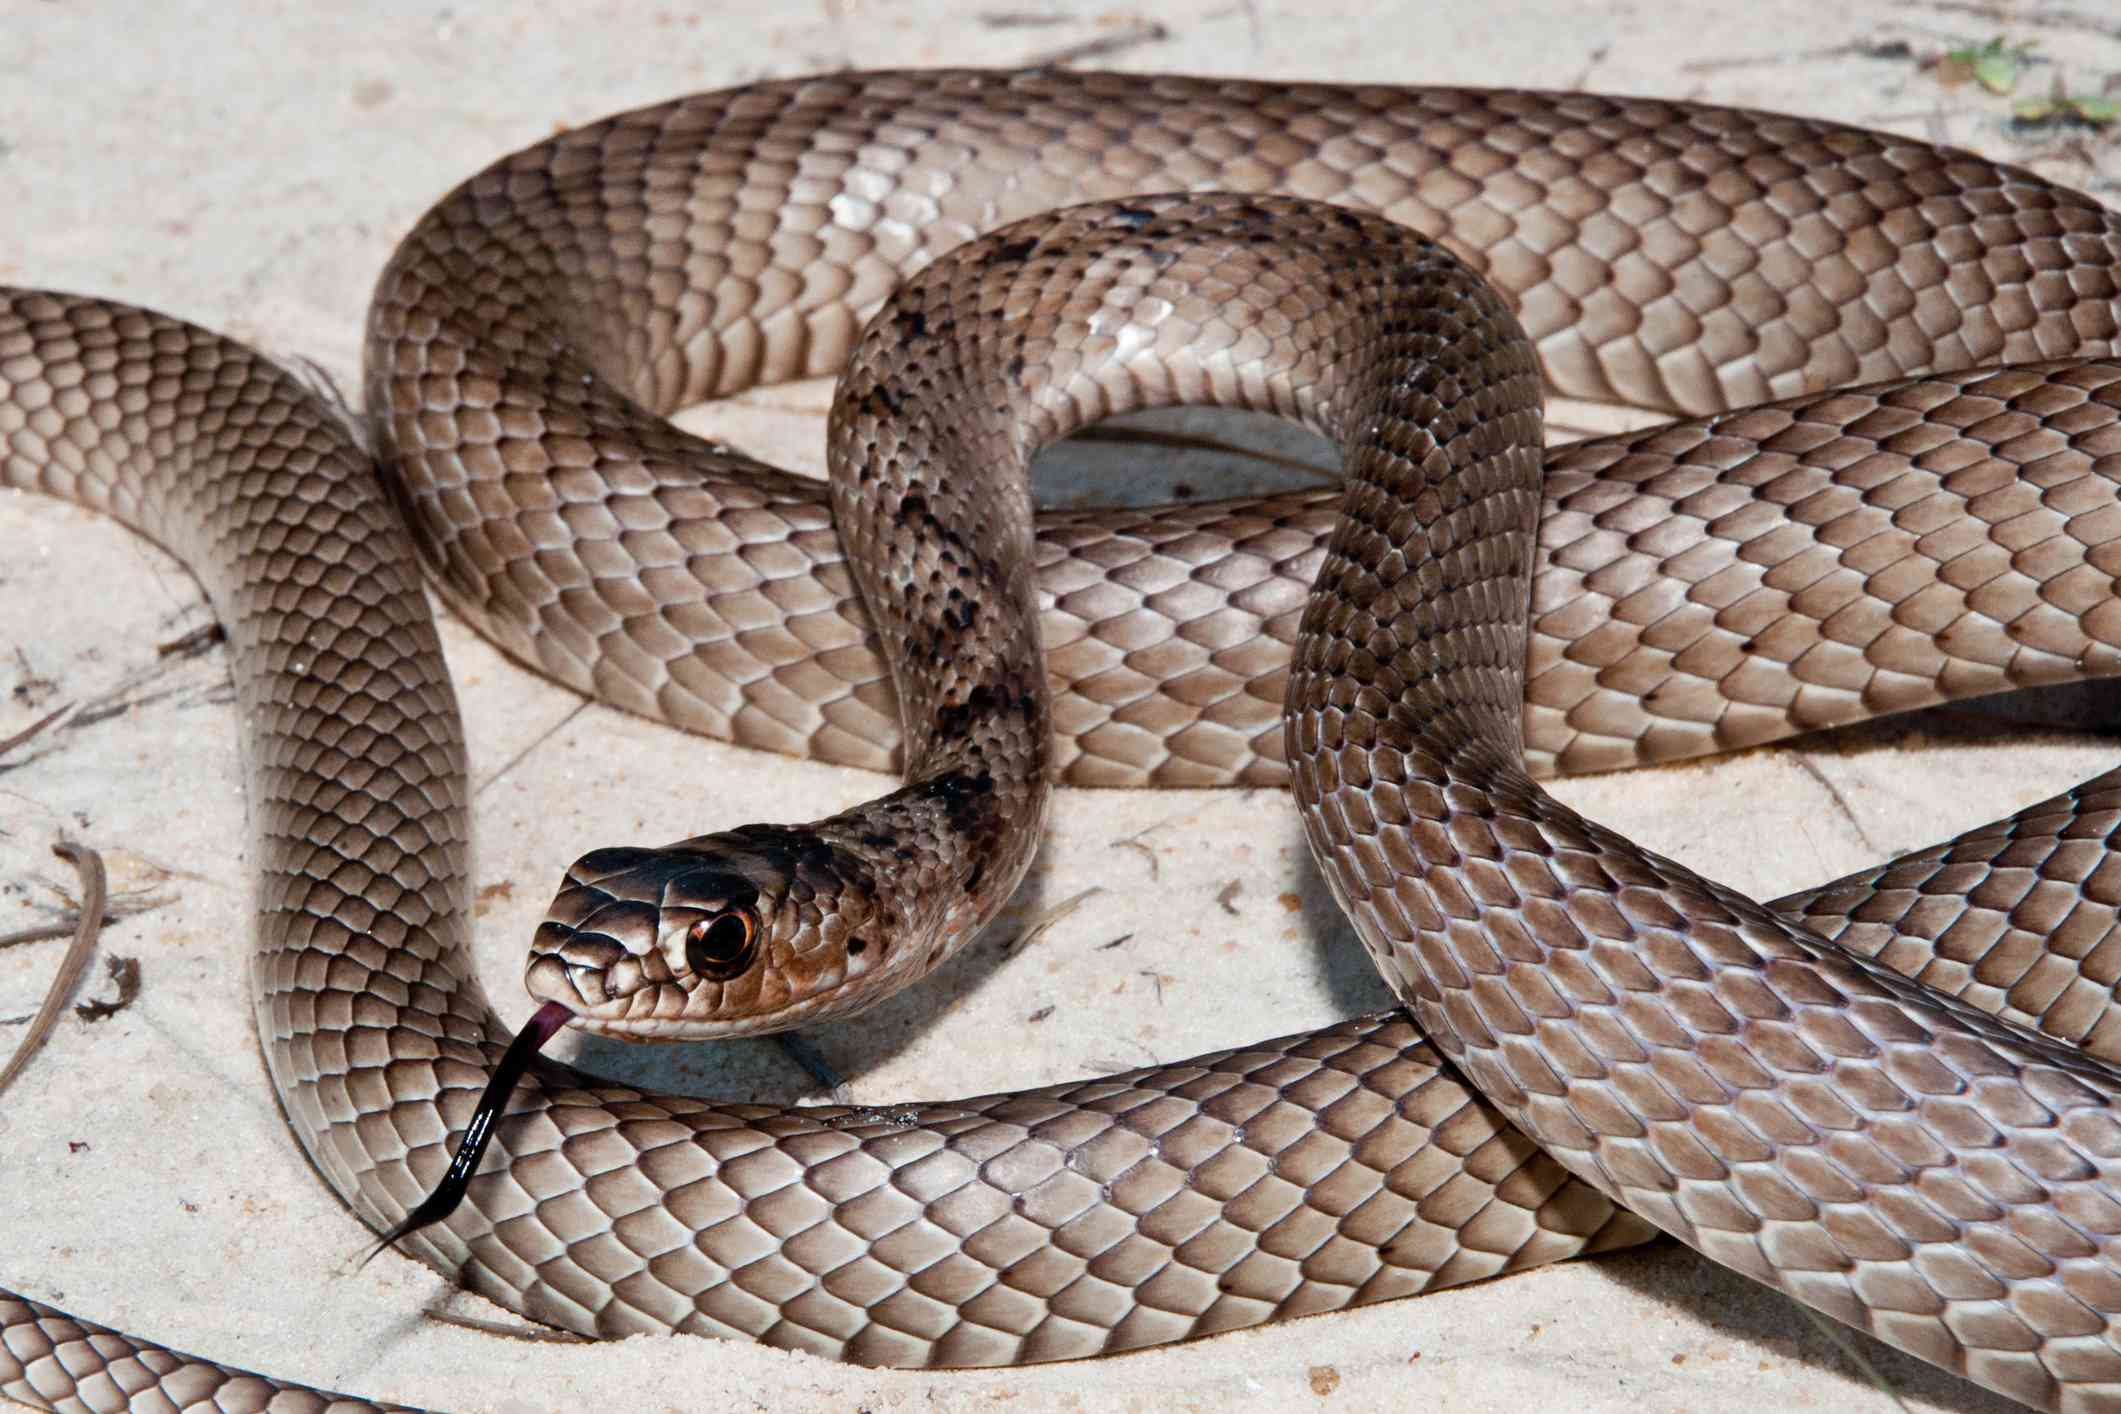 Eastern coachwhip coiled in the sand